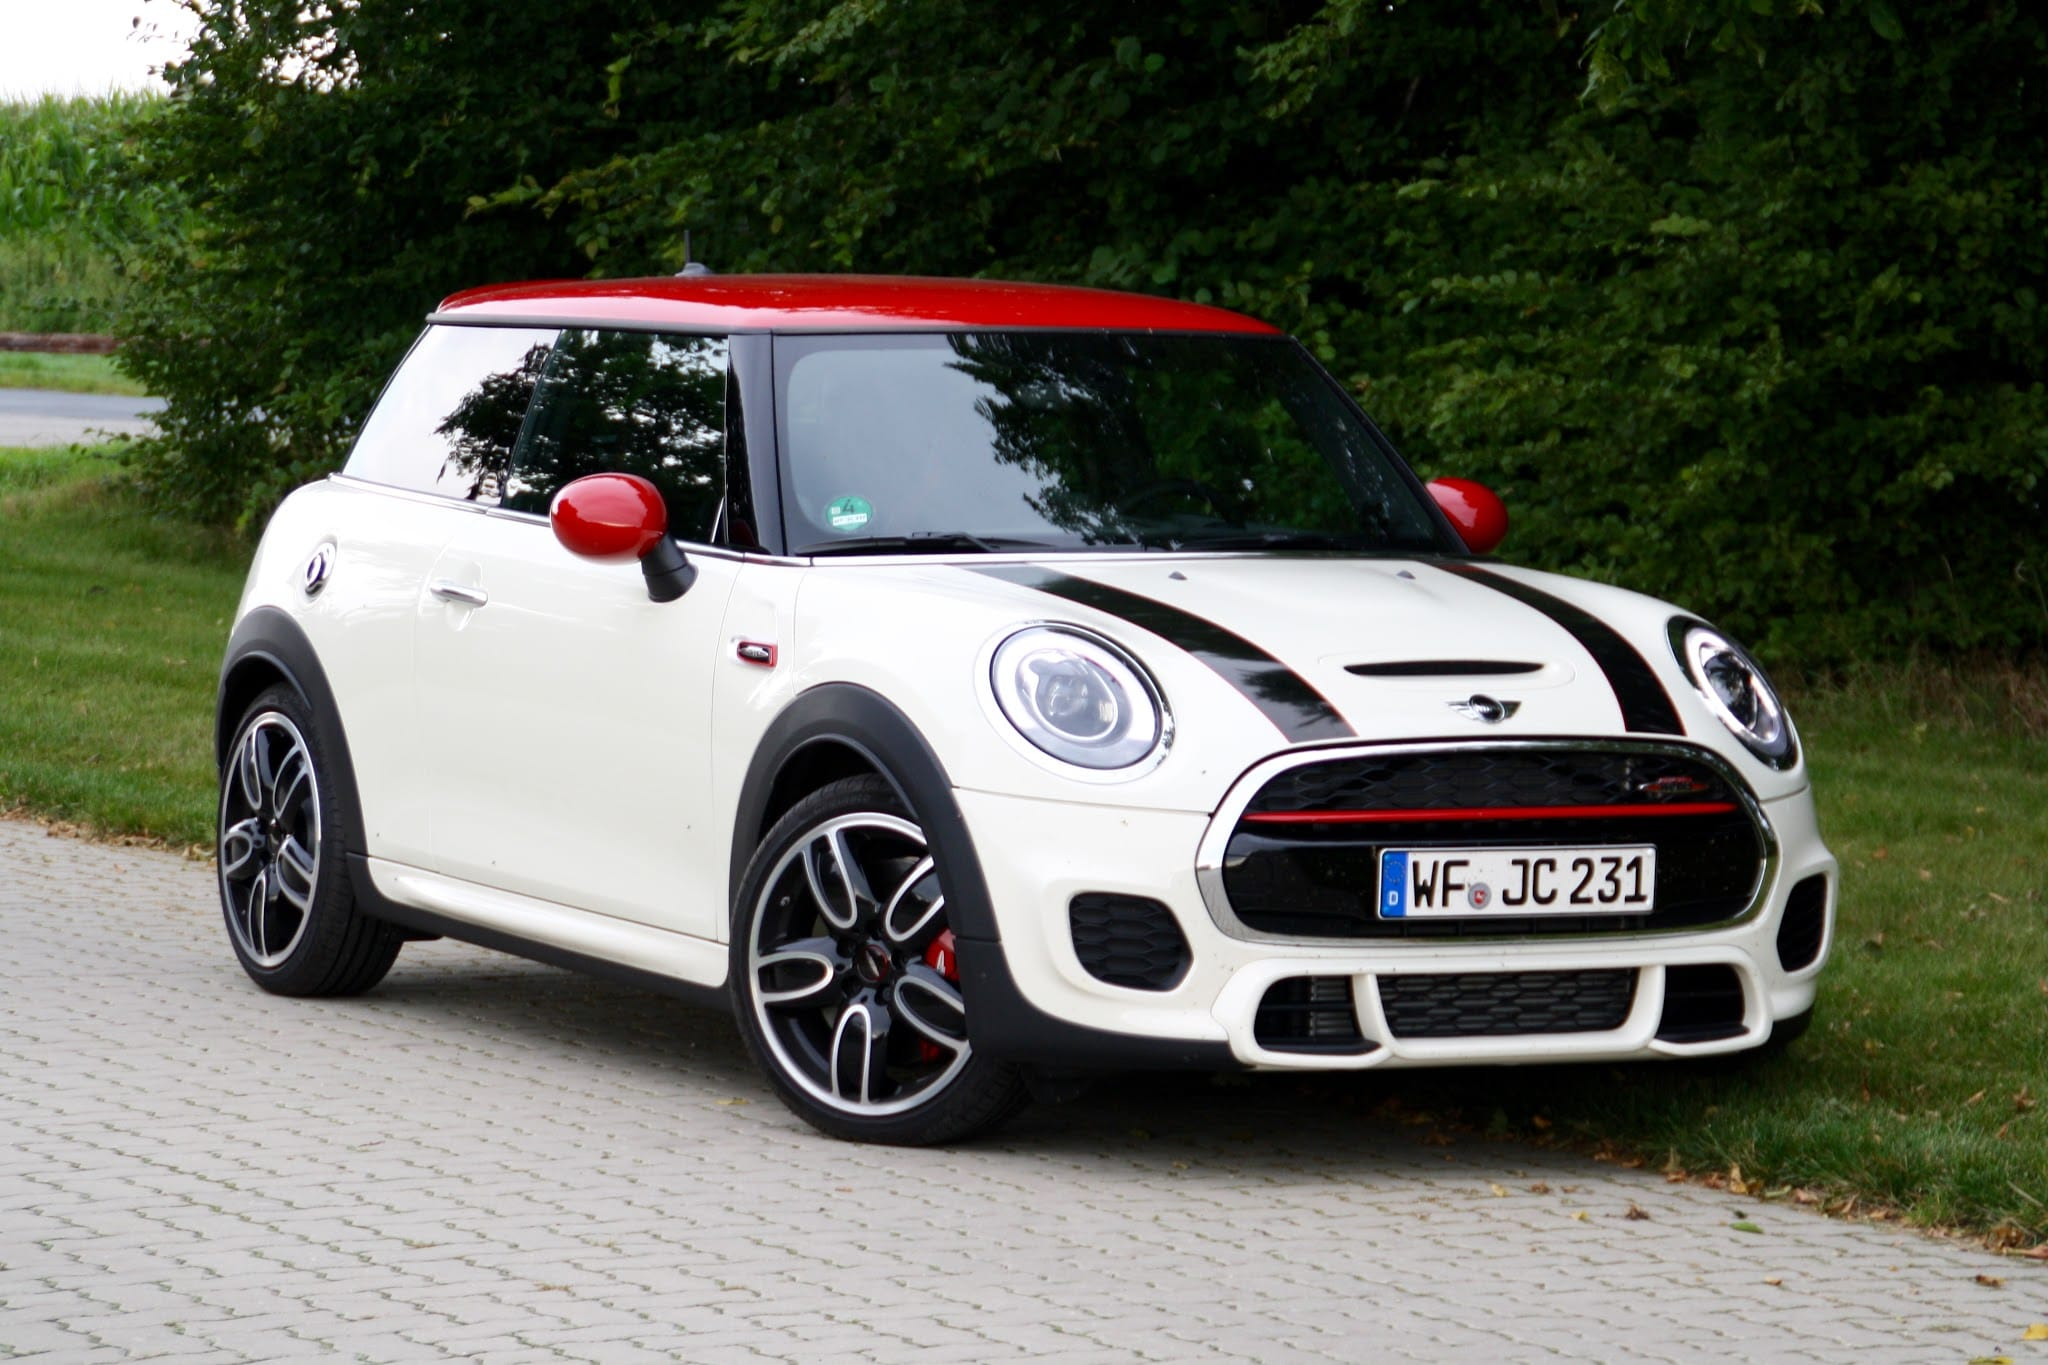 2016 Mini F56 John Cooper Works Automann Tv